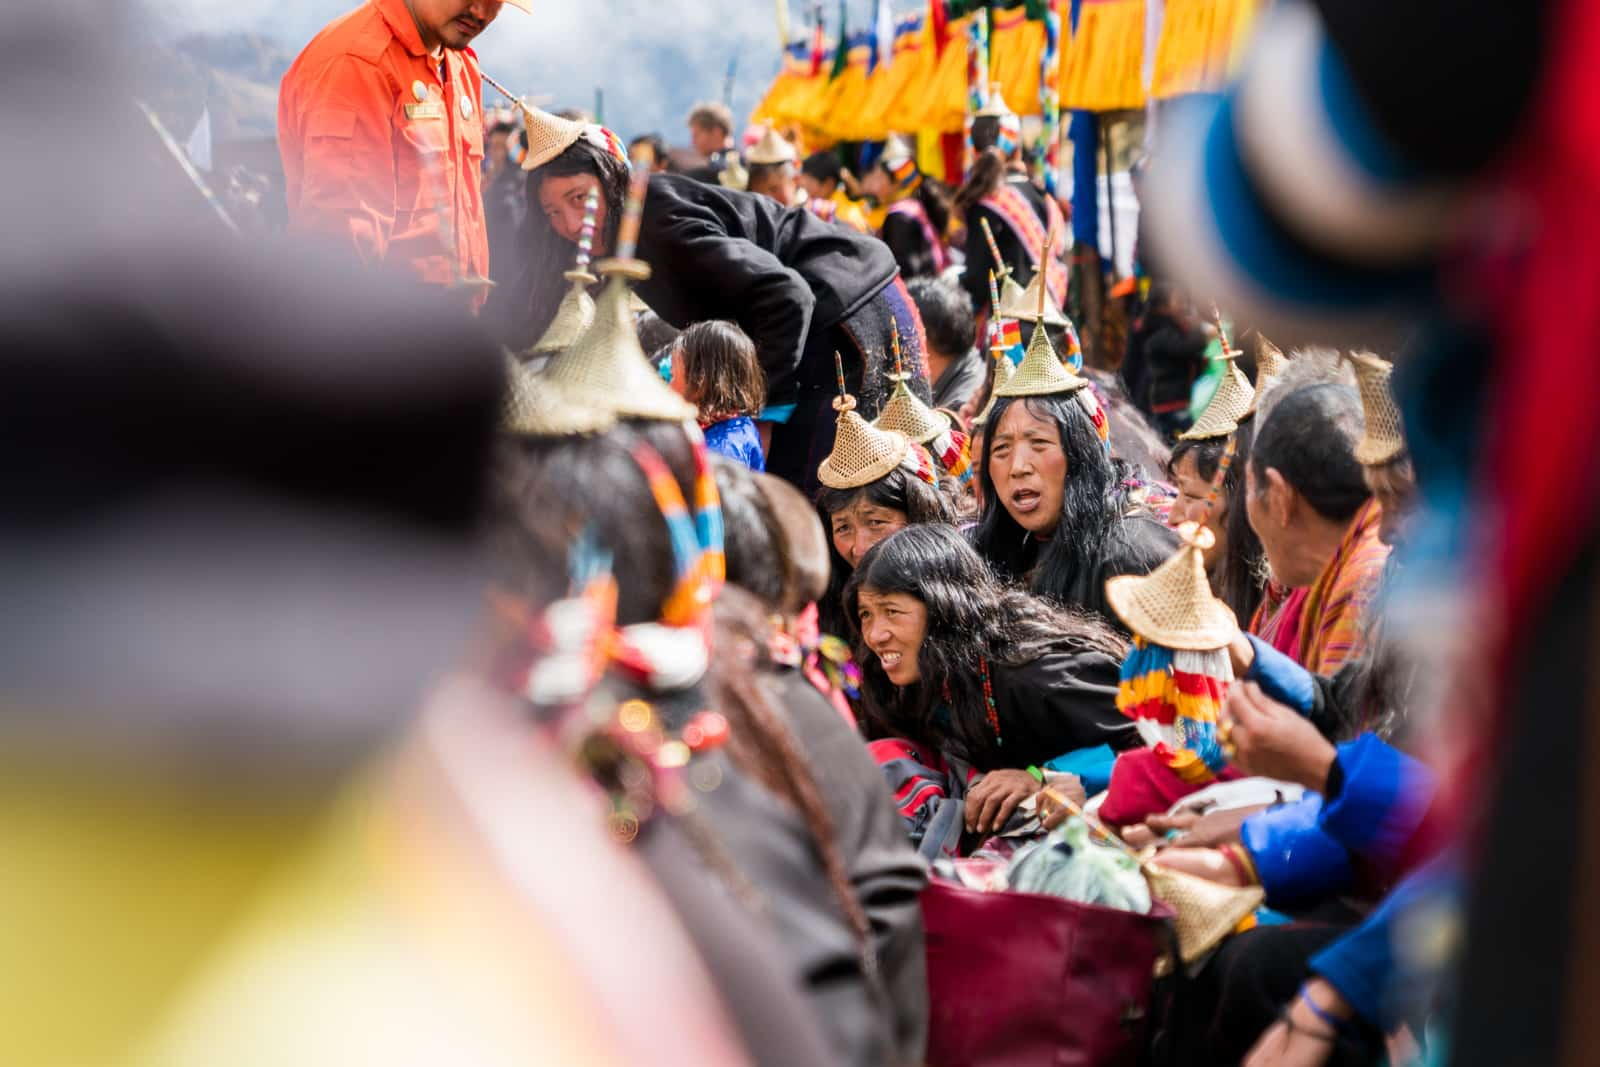 Photos of the 2017 Royal Highlander Festival in Bhutan - Local Layap ladies shouting in the crowd - Lost With Purpose travel blog